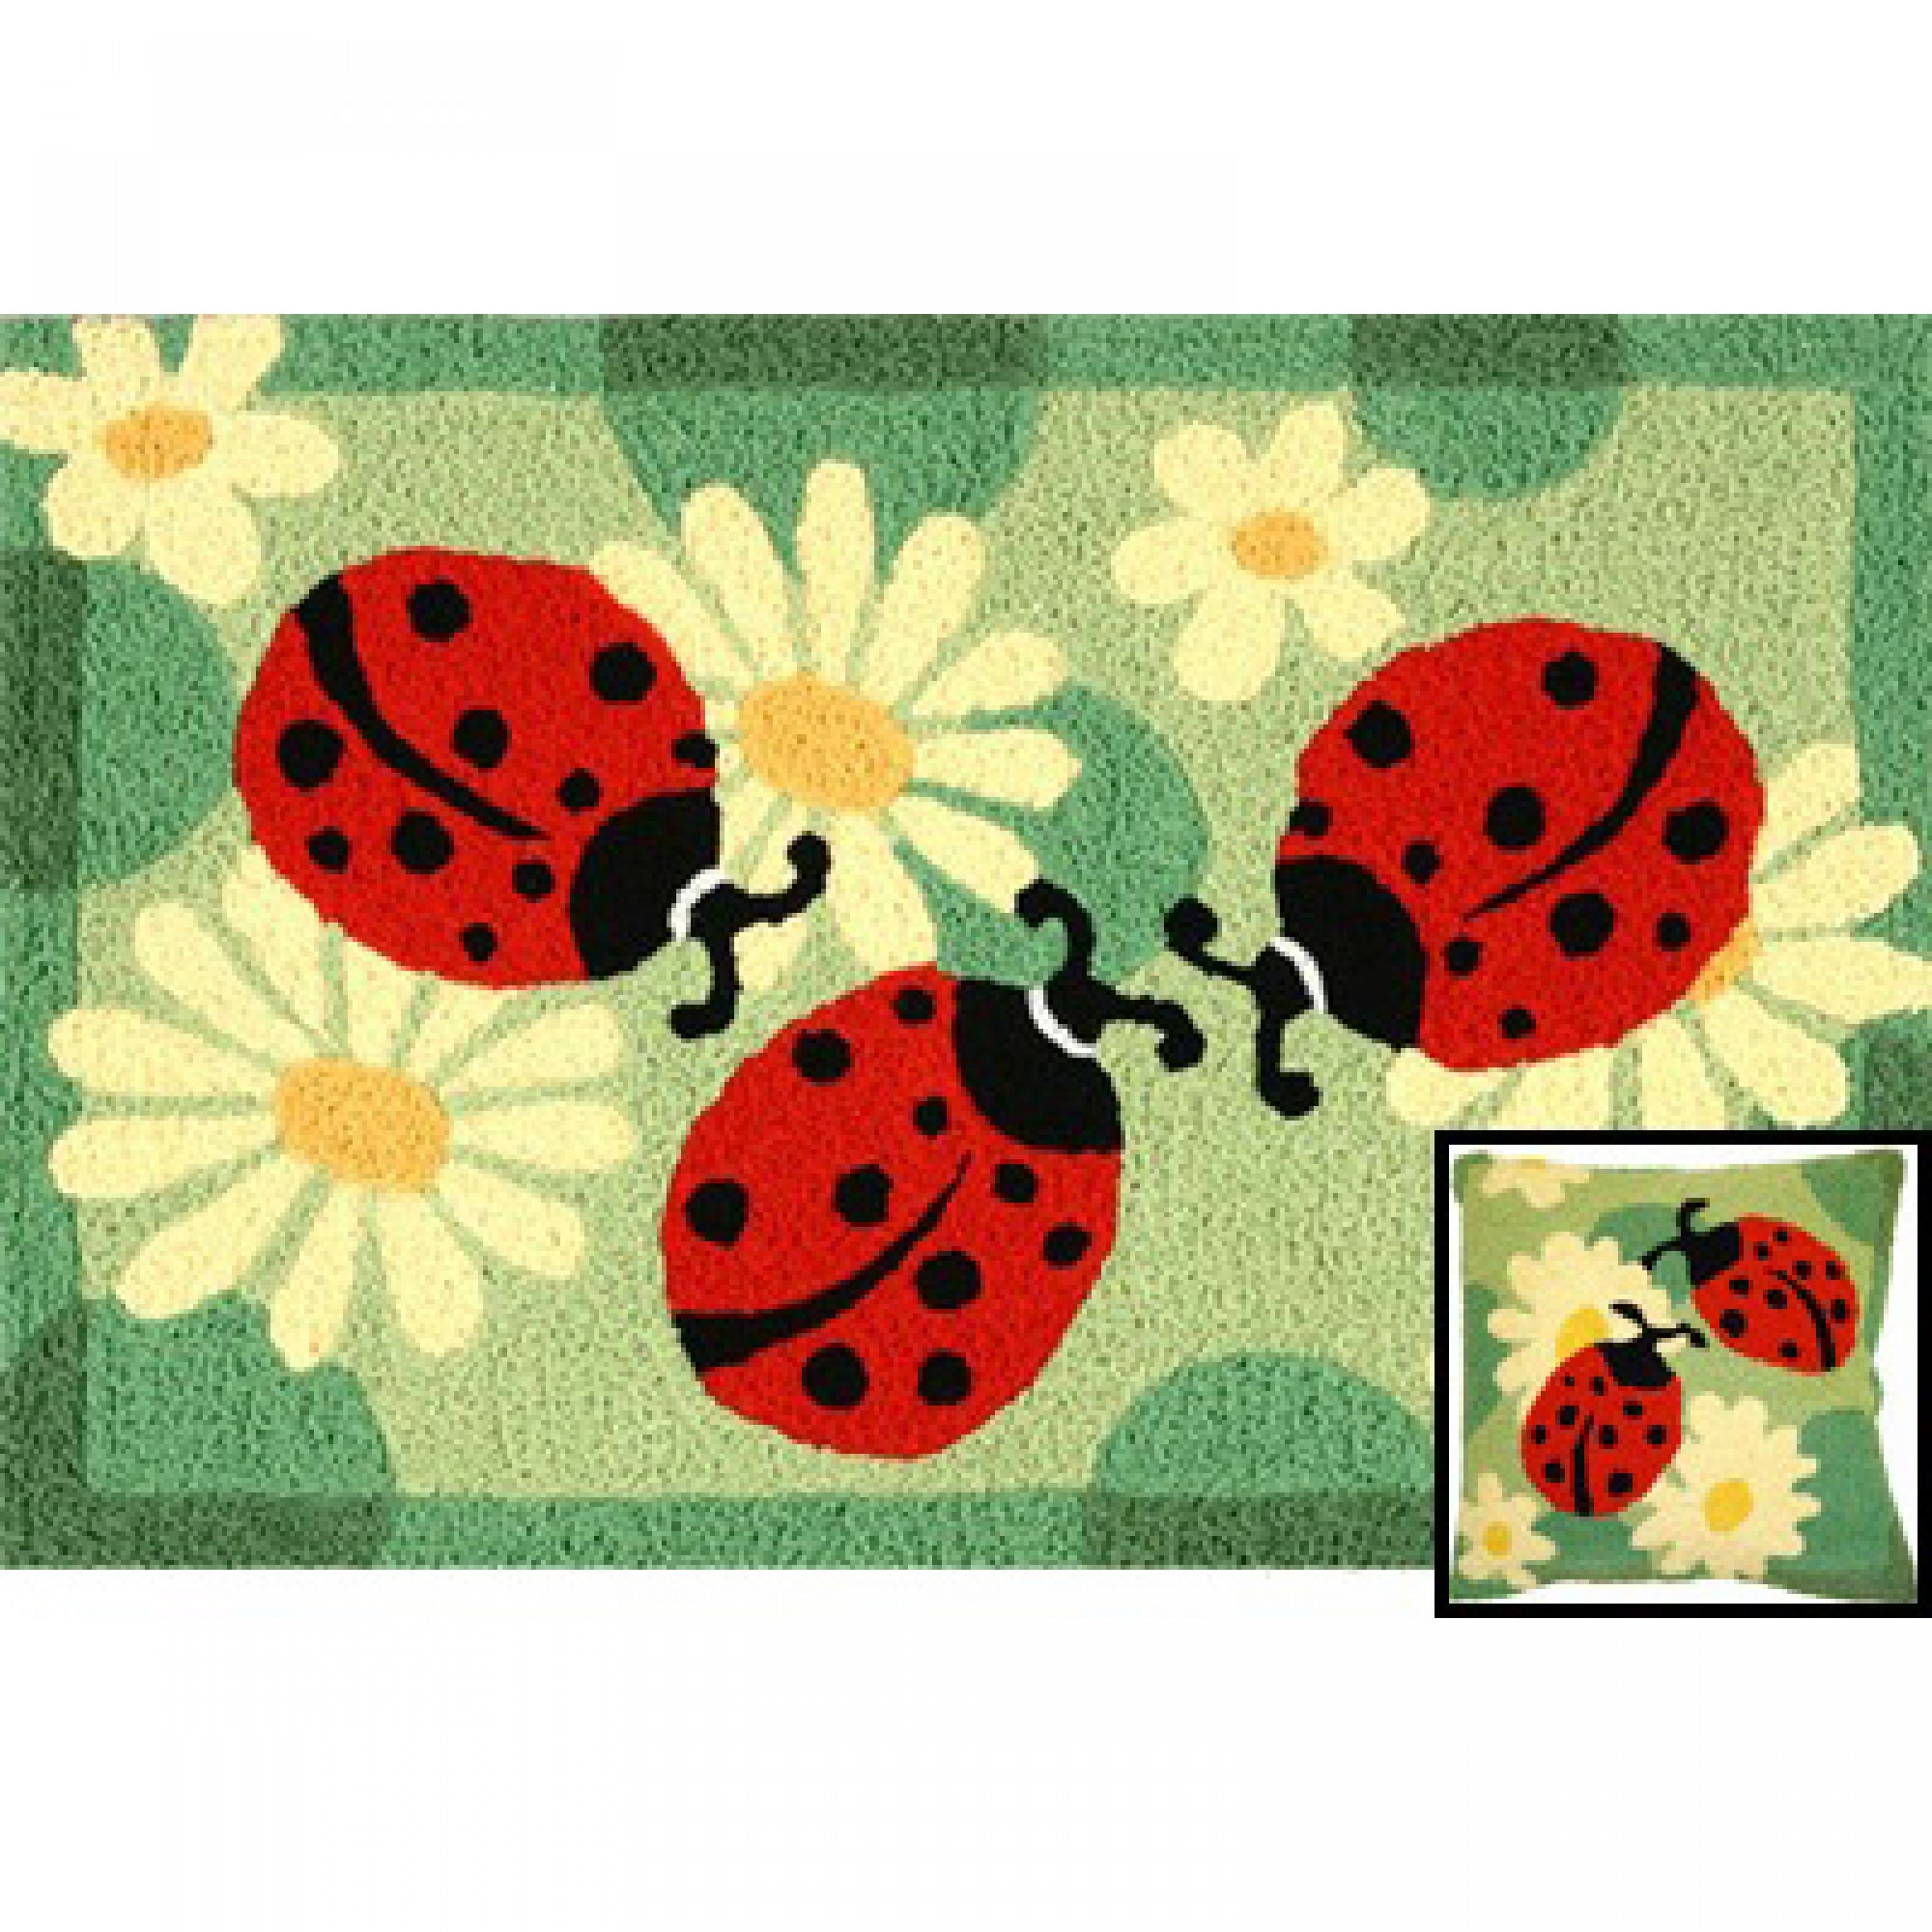 Jb Lighting Usa Jellybean Ladybugs Sku Jb Hv001 Mat Mats Outdoor